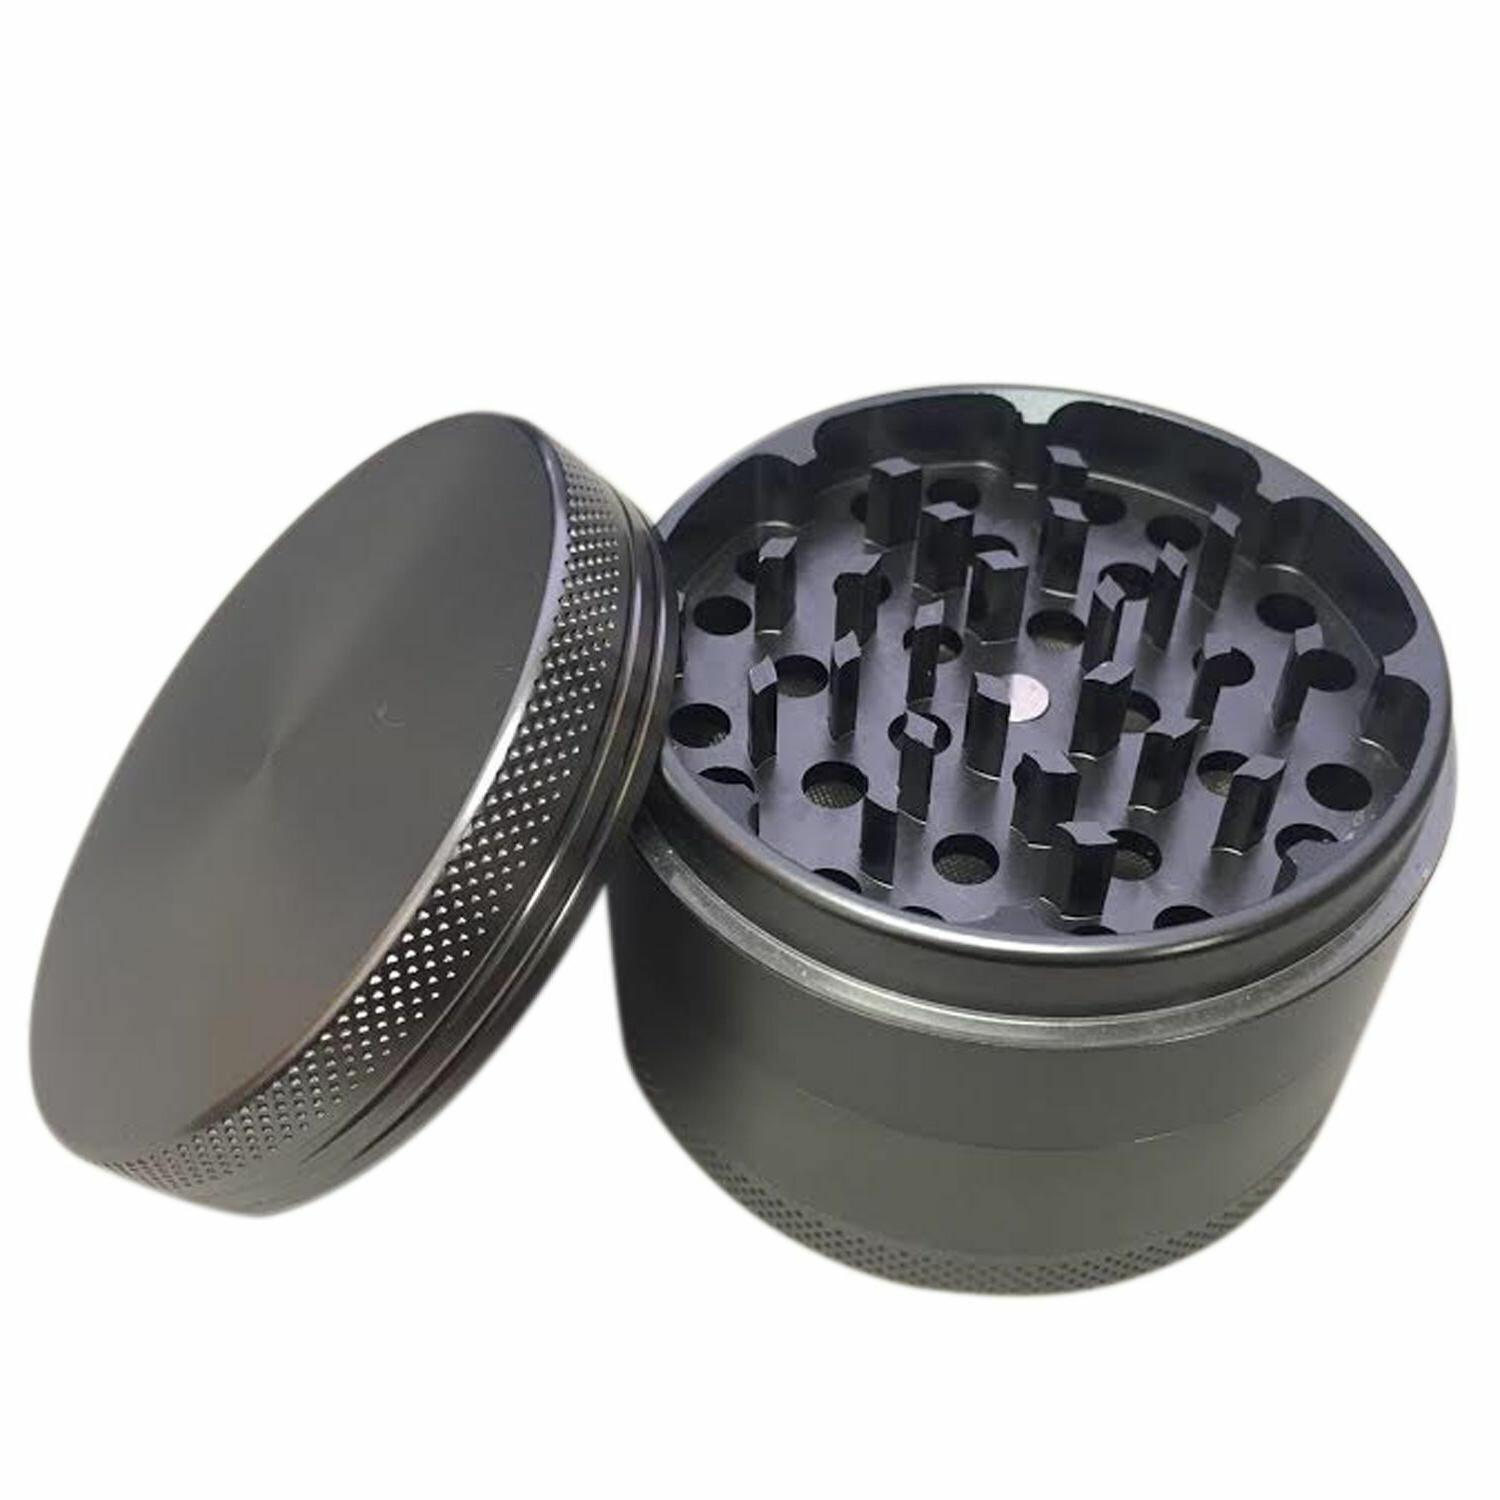 4 Piece Magnetic 2.5 Inch Black Tobacco Grinder Spice Aluminum Scoop